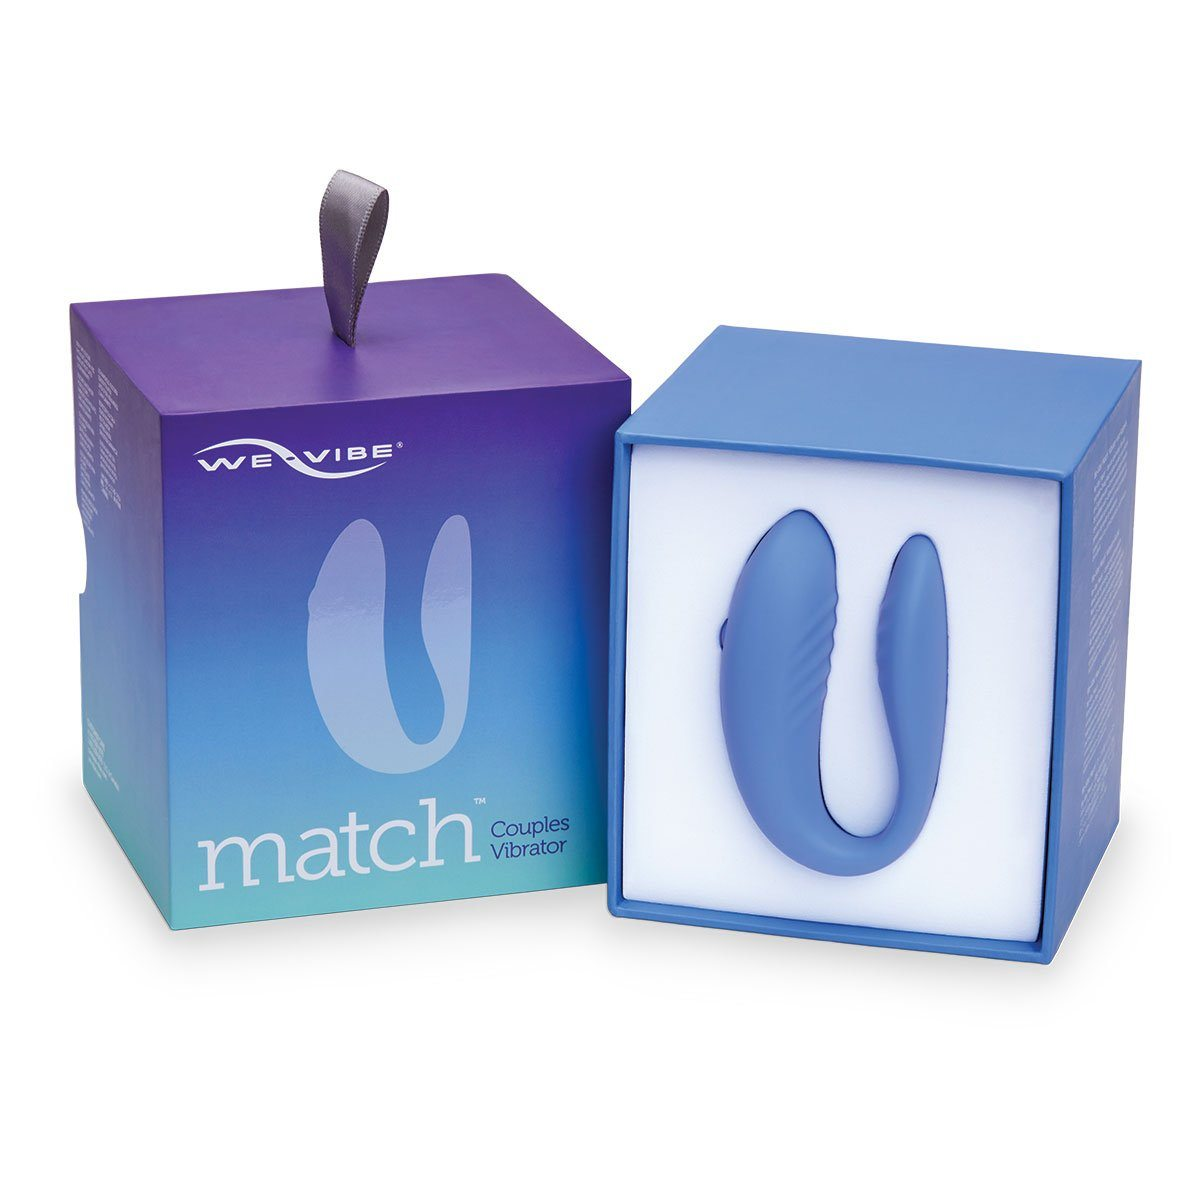 We Vibe Match Couples Vibrator 9  - Beyond Delights